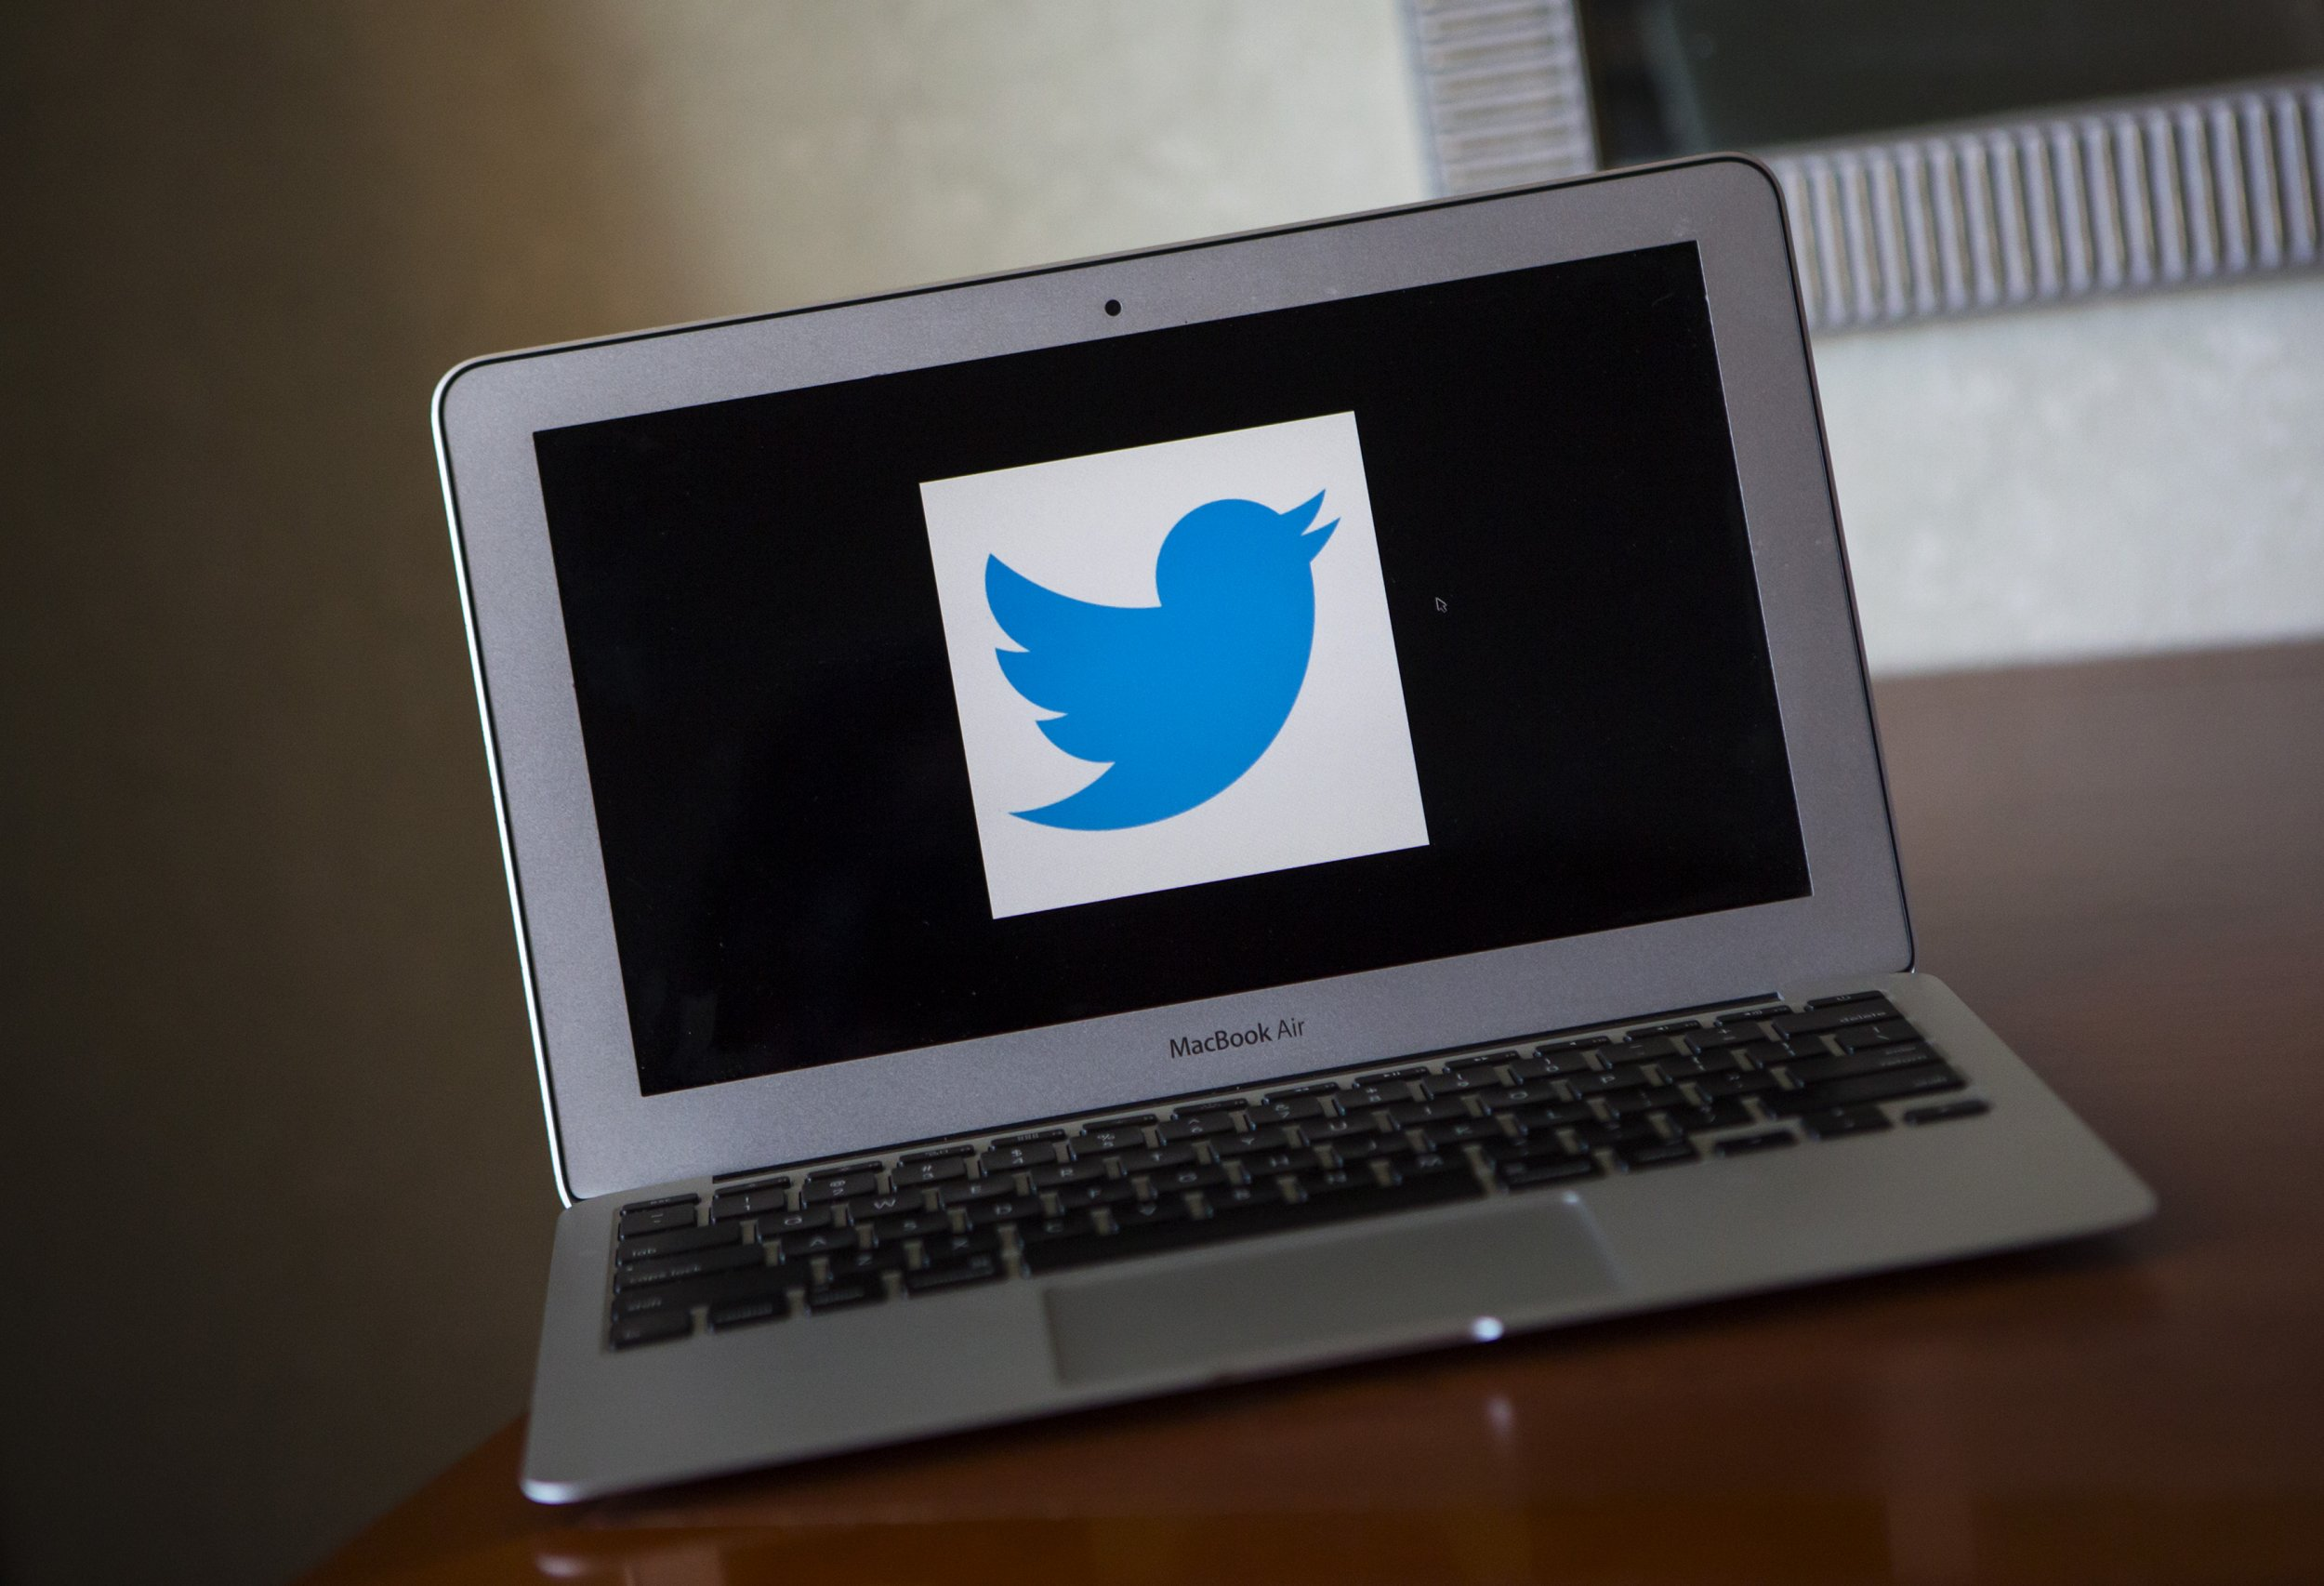 twitter suspends sports site Deadspin